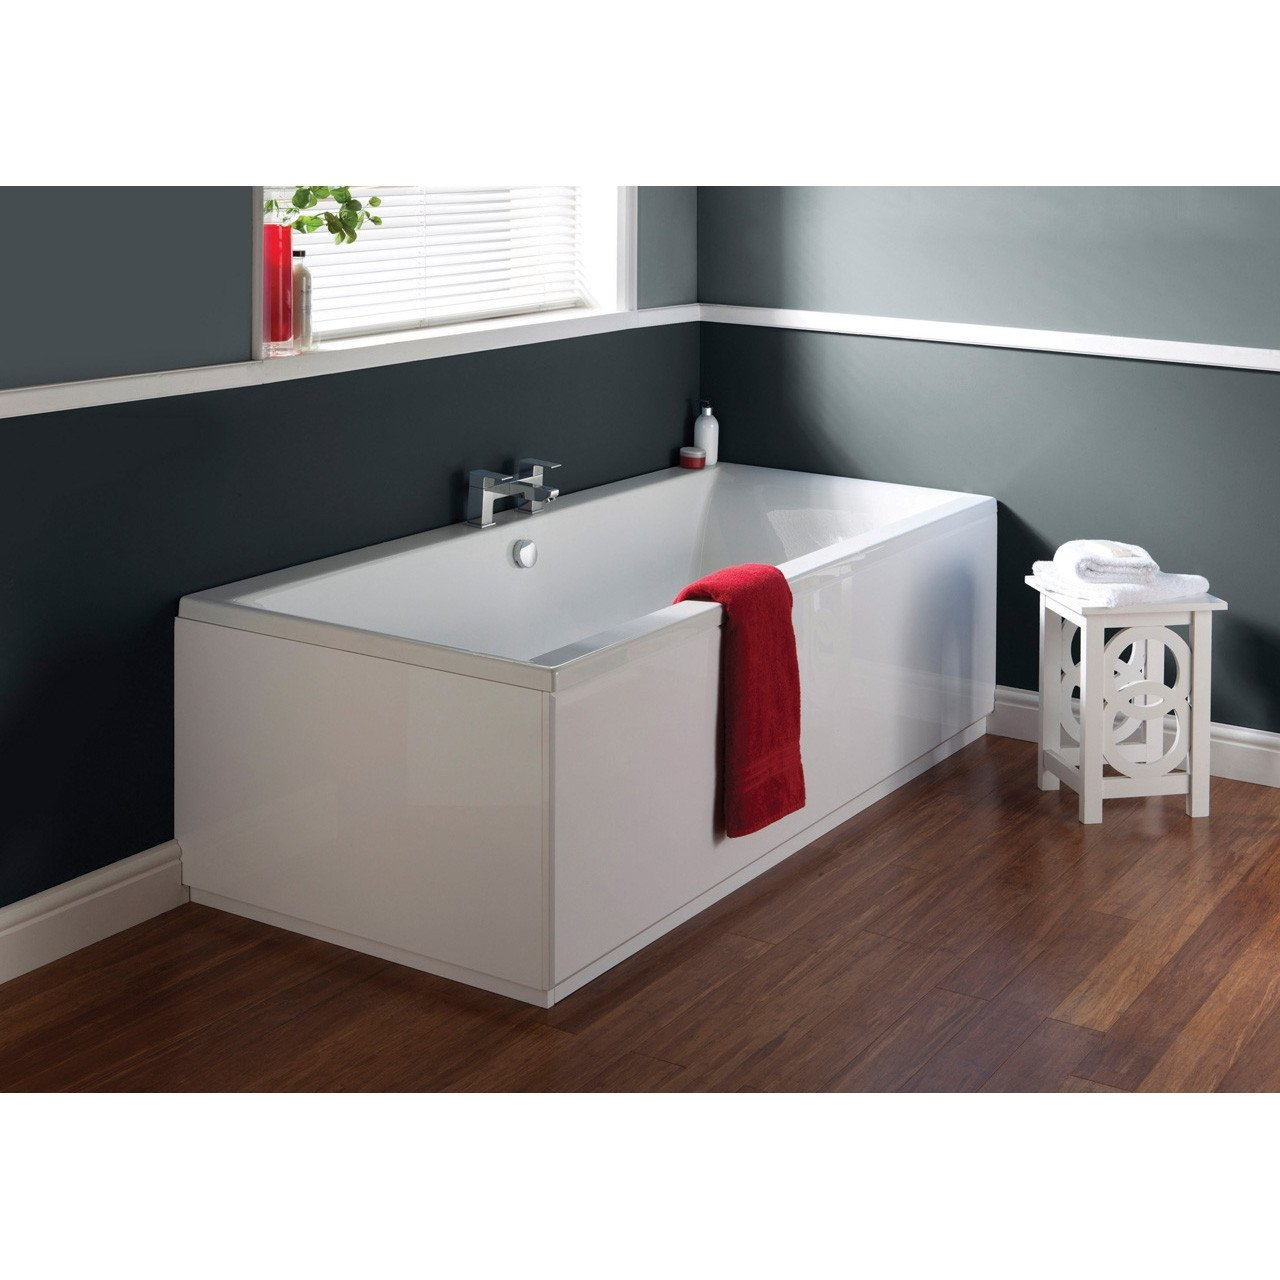 Nuie Asselby 1700mm x 750mm Square Double Ended Bath - NBA210